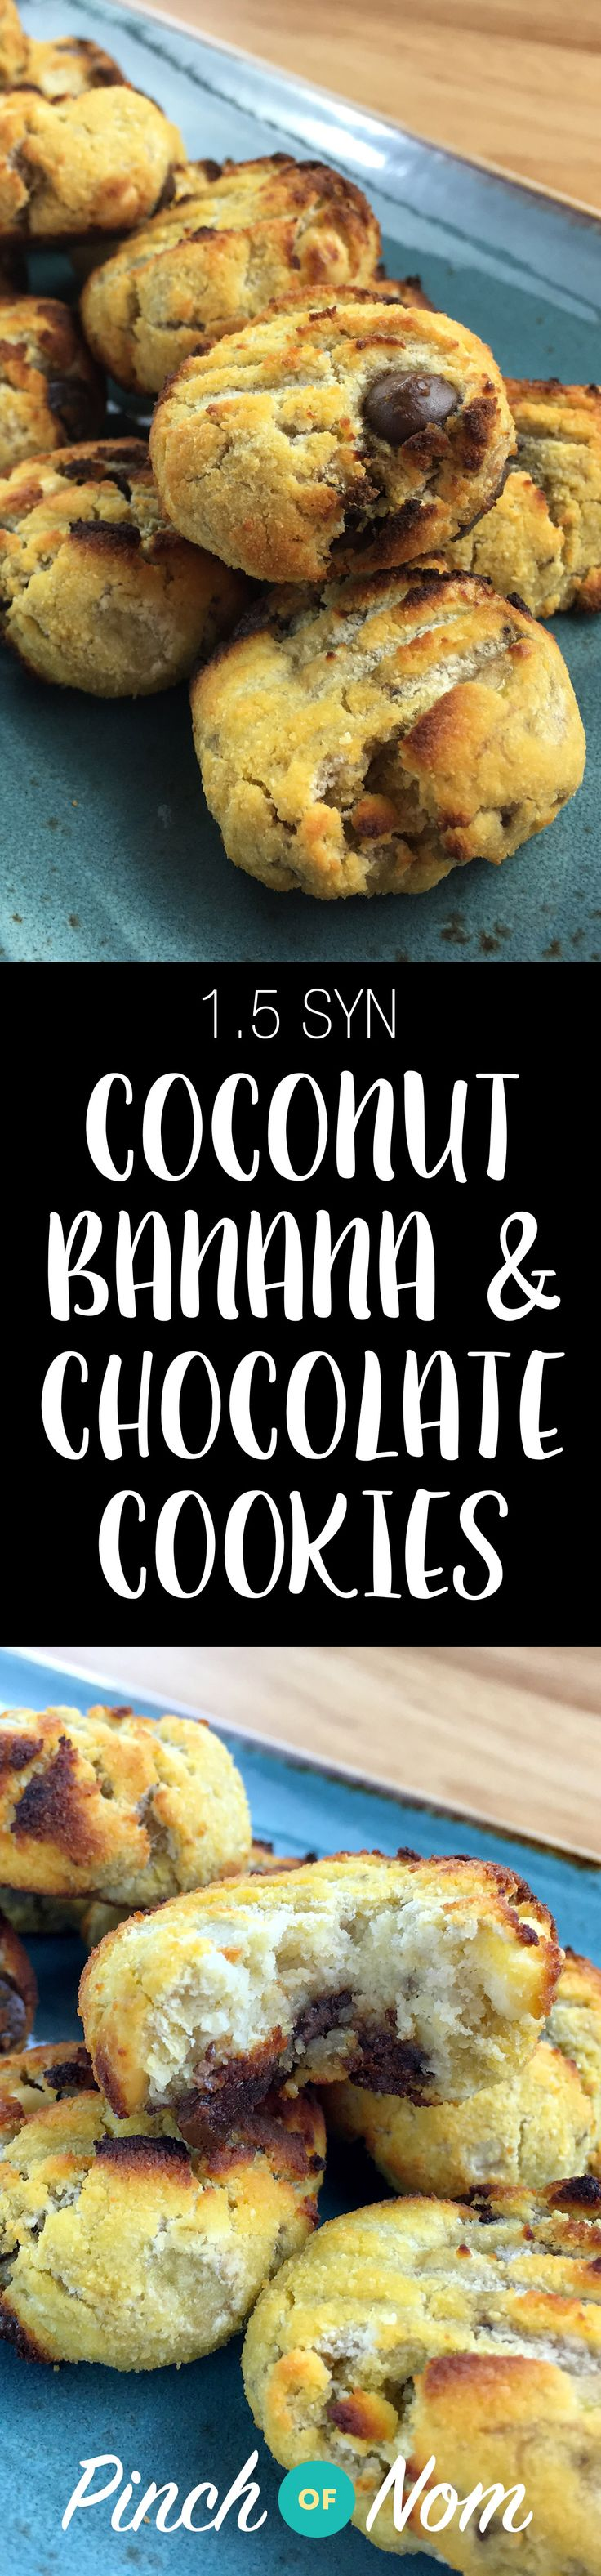 Low Syn Coconut, Banana & Chocolate Chip Cookies | Slimming World